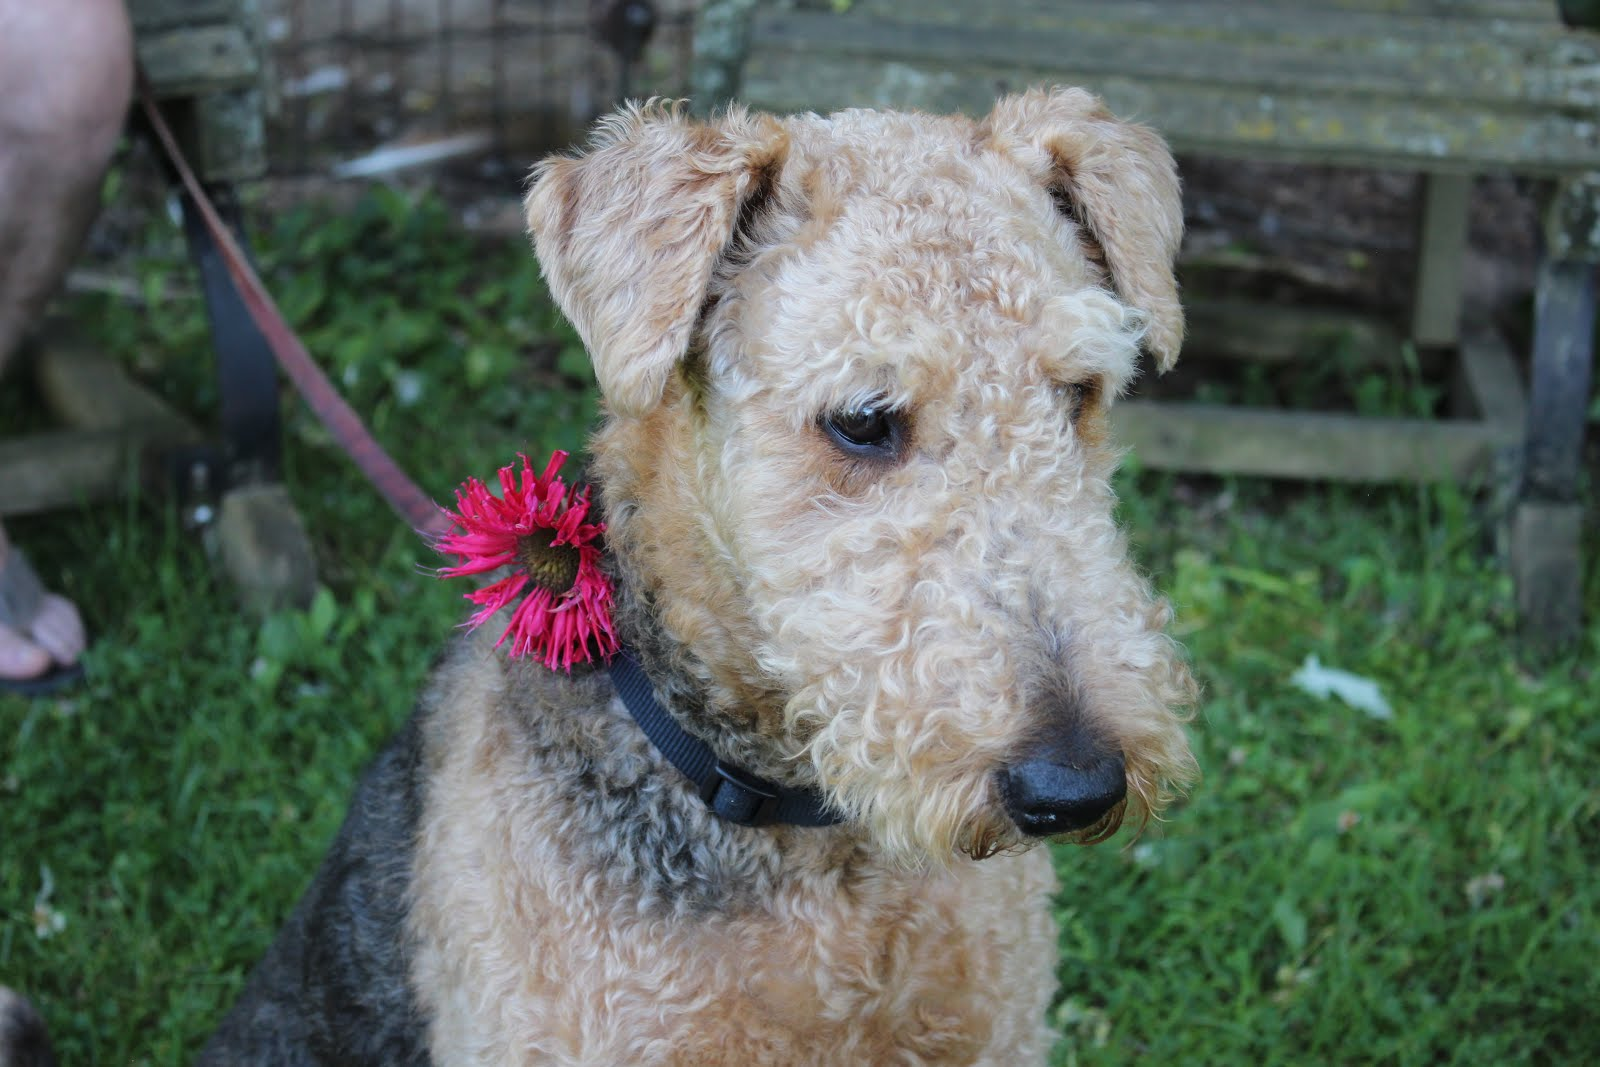 Luke our Airedale